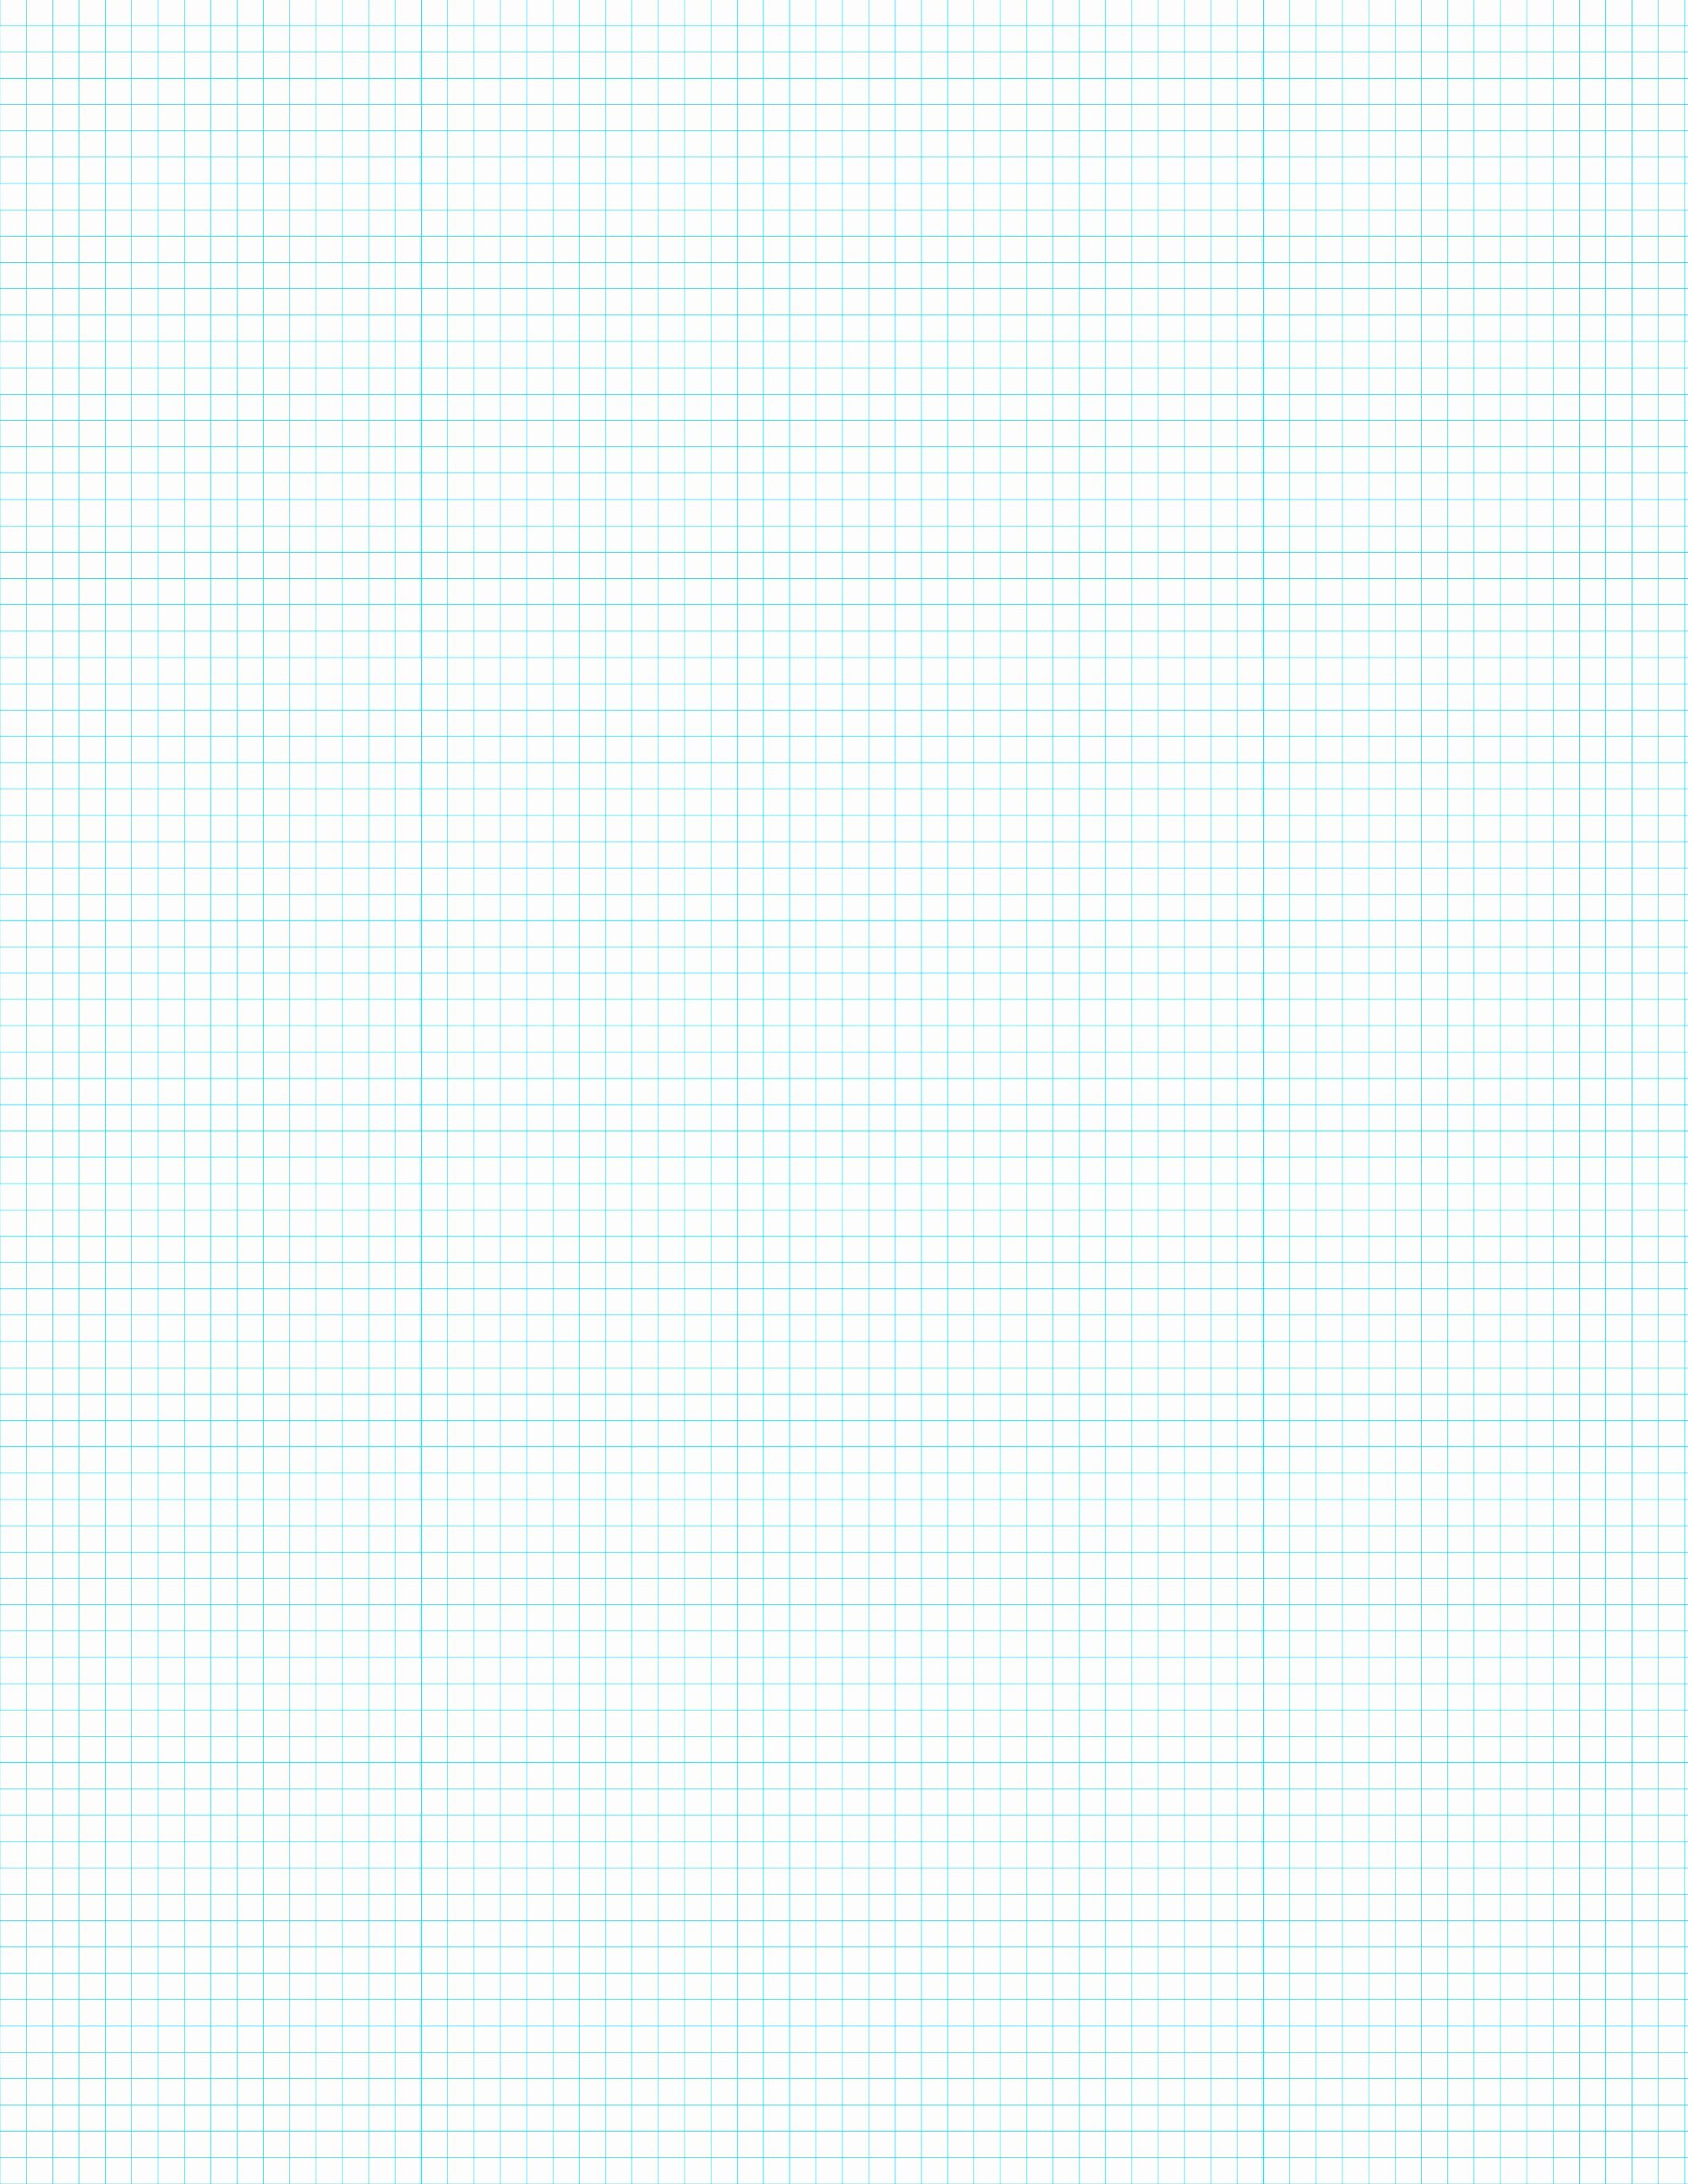 Graph Paper Printable Free Best Of Free Printable Graph Paper Paper Trail Design